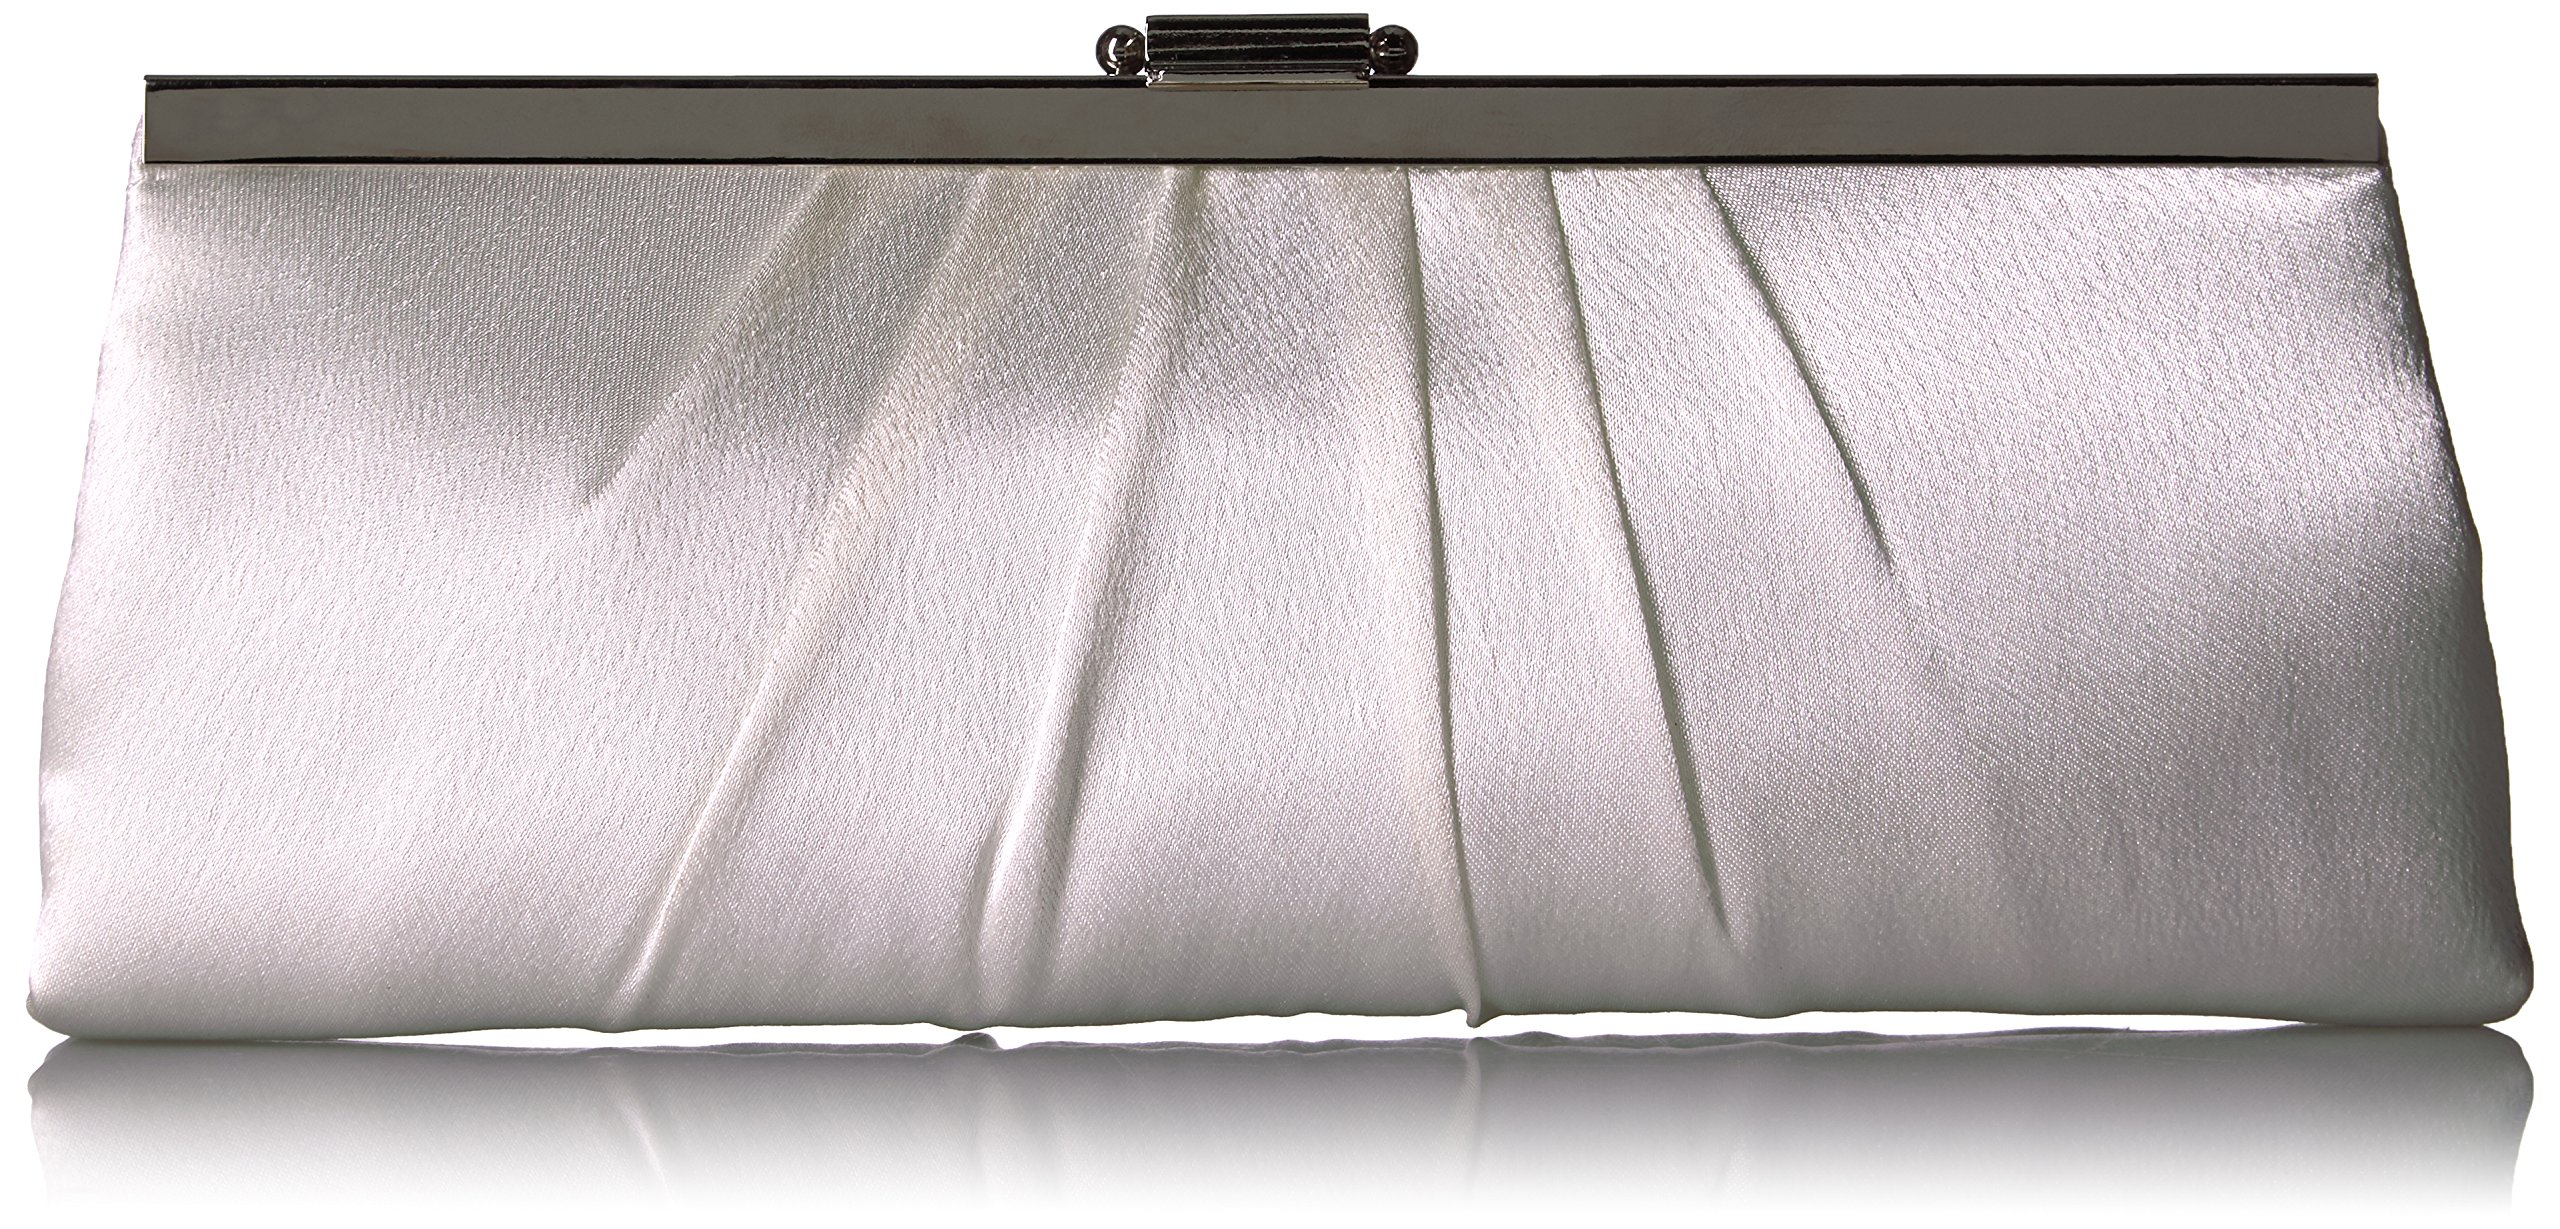 Blaire Satin Framed Clutch Evening Bag, Ivory, One Size